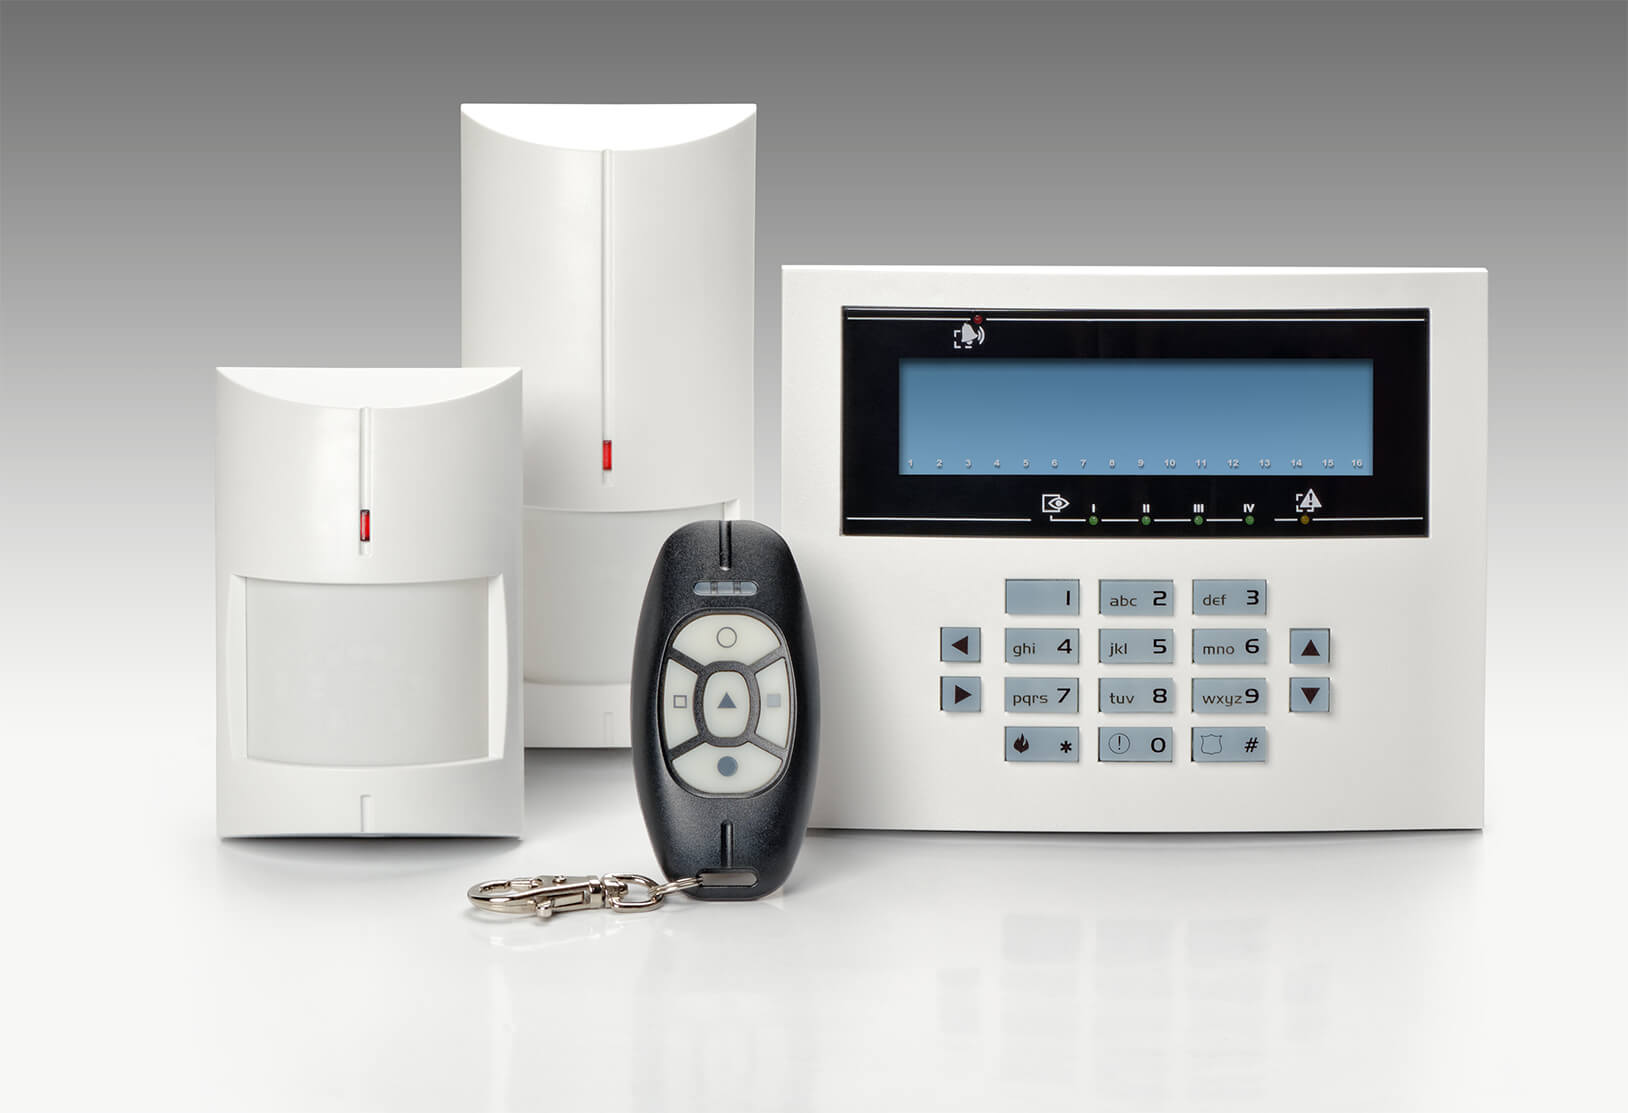 Commercial Burglar Alarms For Business in Hammersmith W11  - Local Hammersmith W11 burglar alarm company.Call 02078872244 - Dedicated to Safety & Security. Companies, shops and homes ..